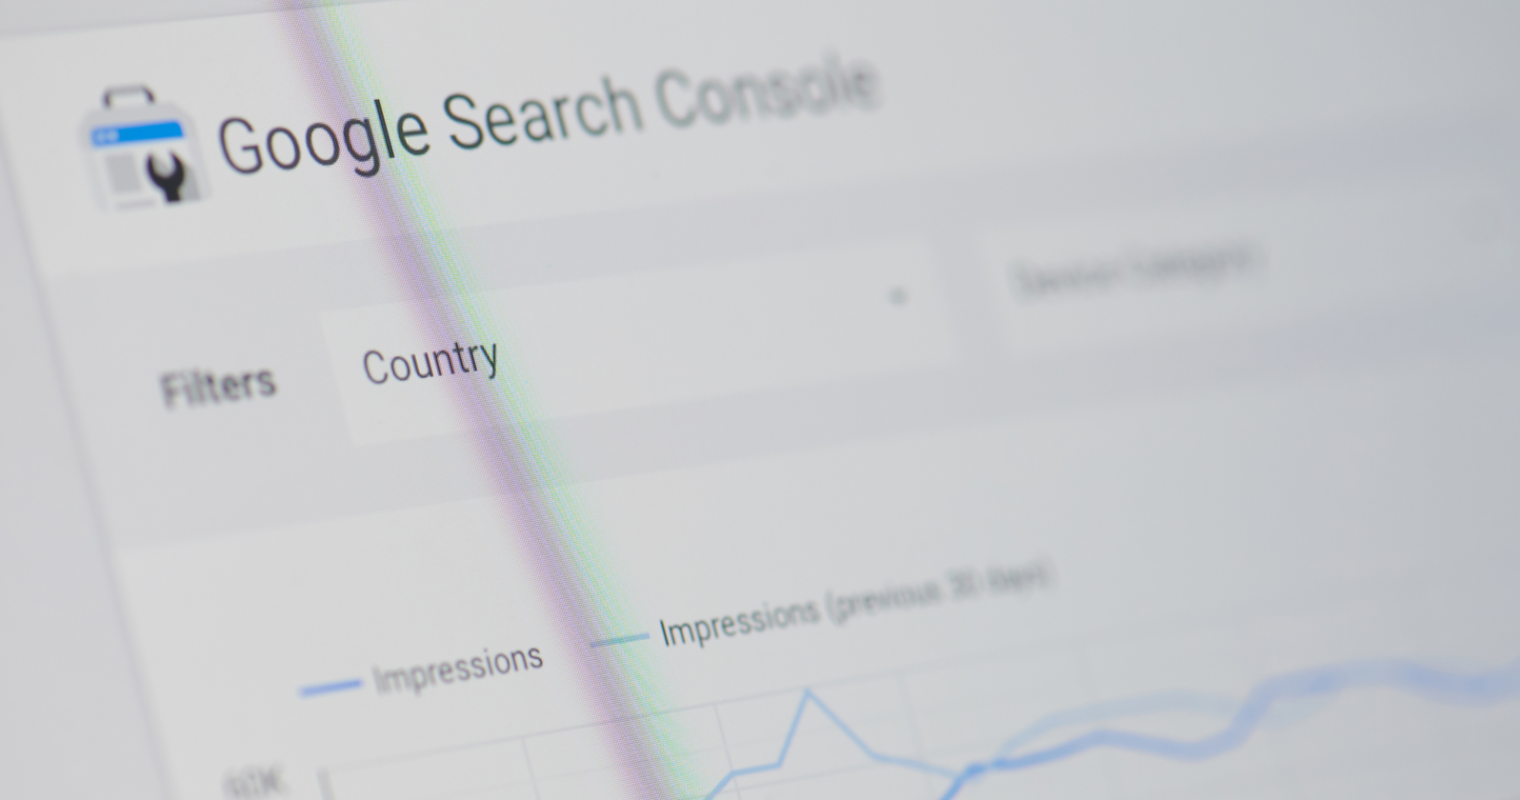 Google Search Console's Testing Tools Gain Two New Features